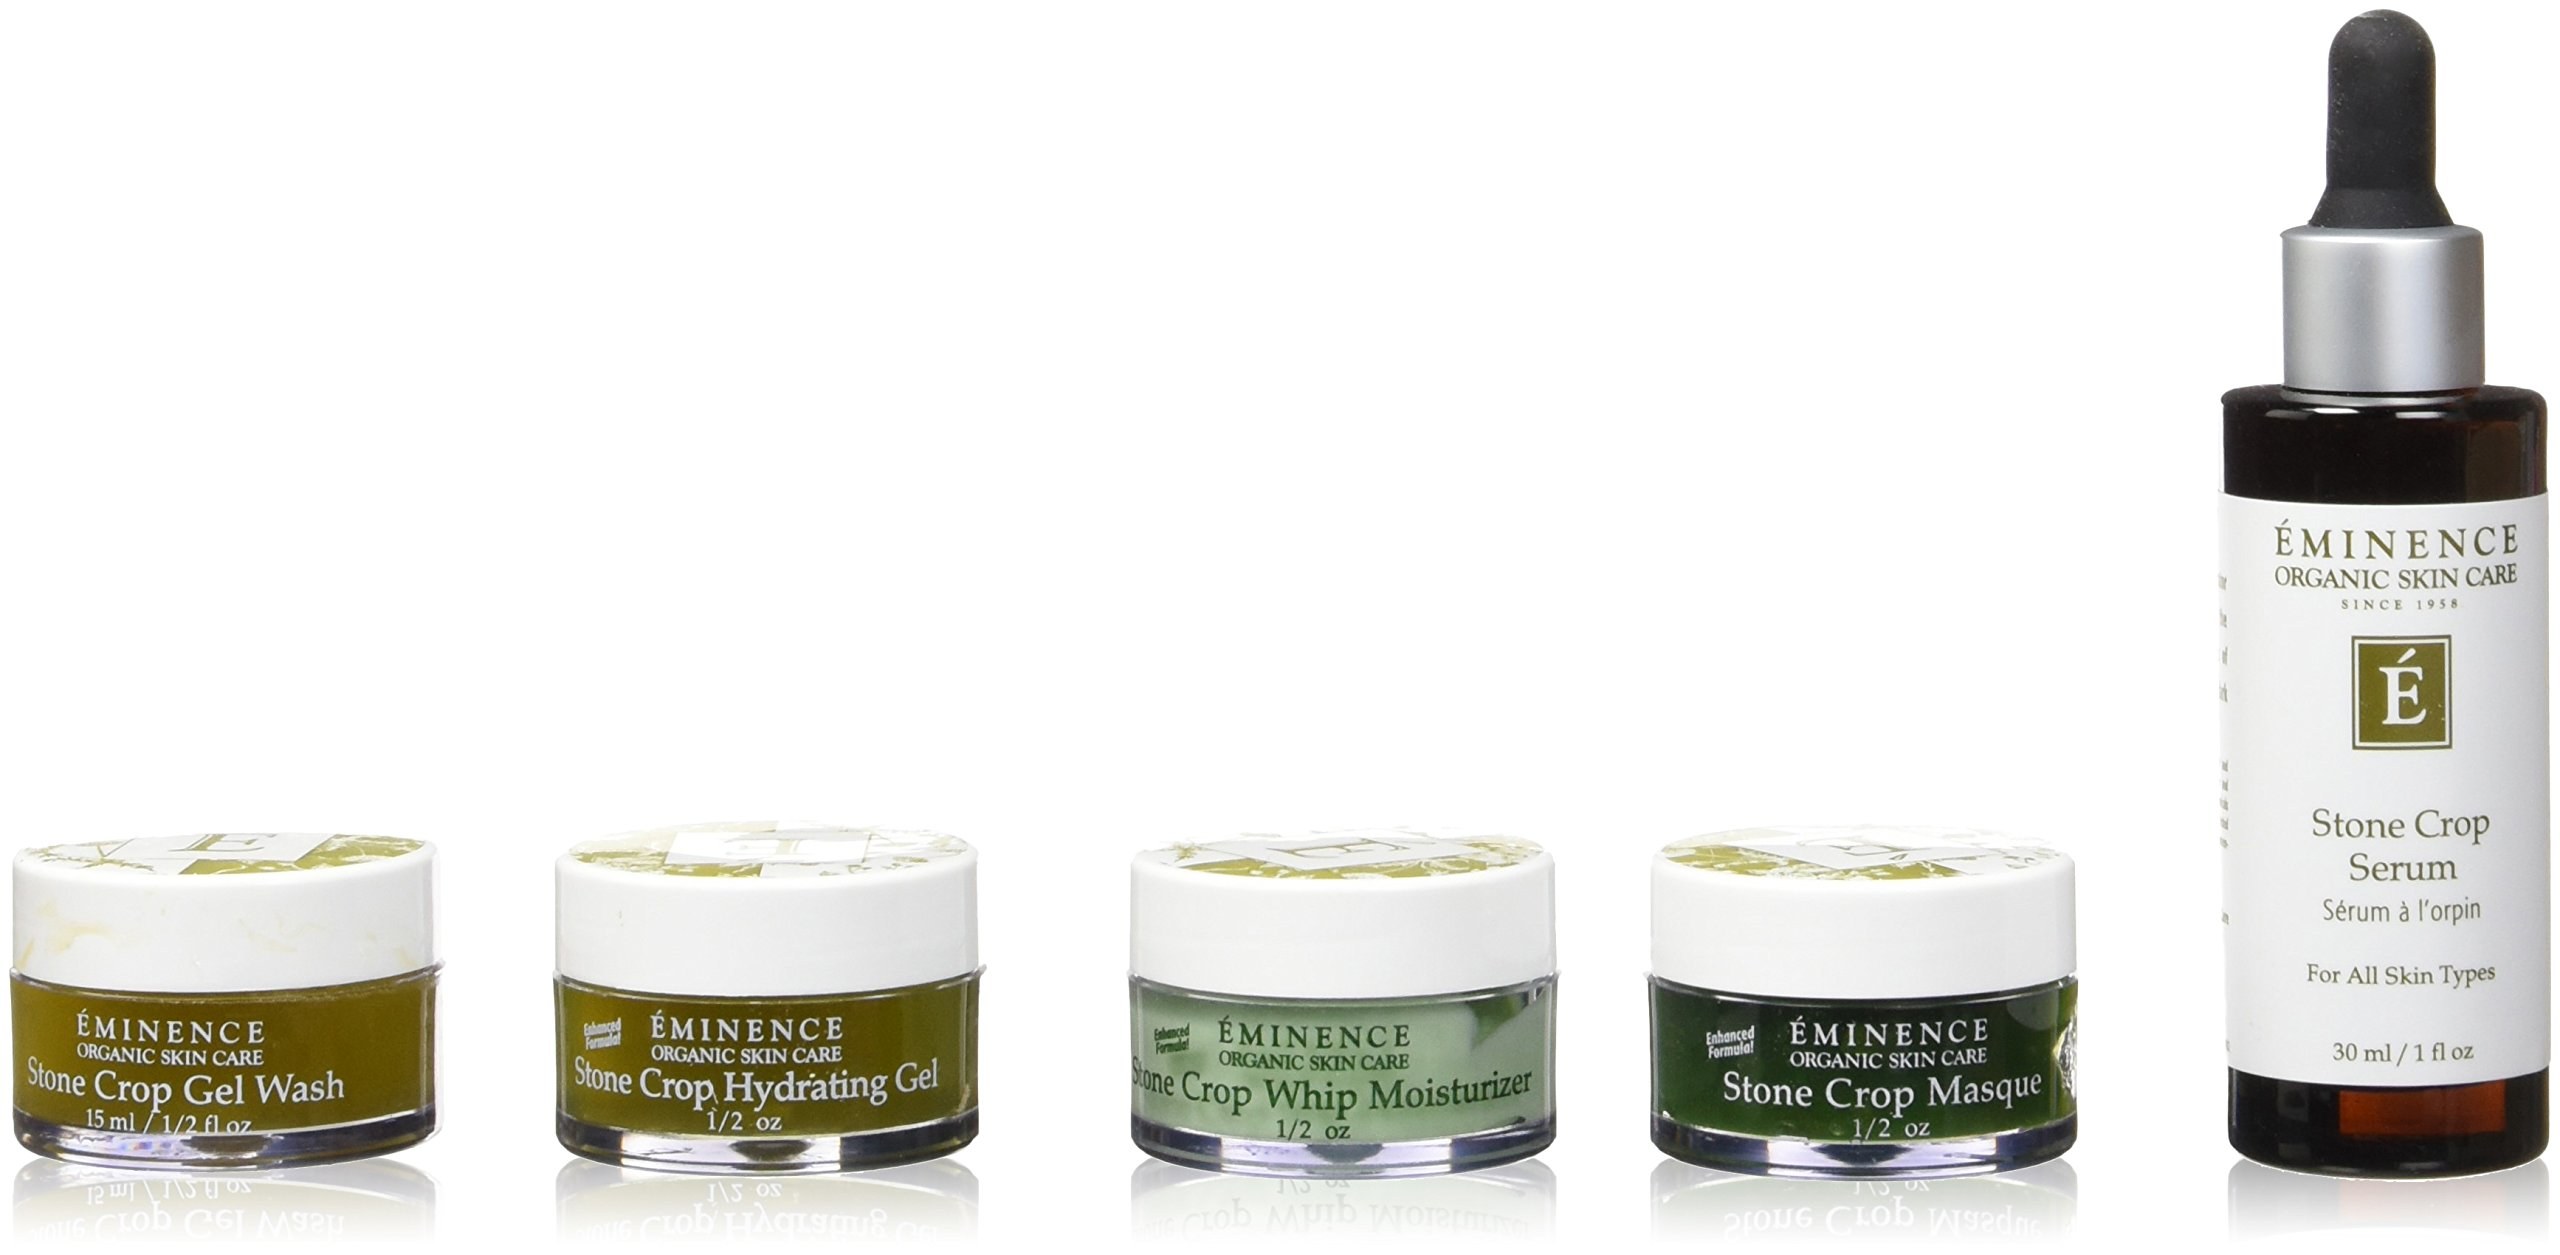 Eminence Organics Stone Crop Gift Collection